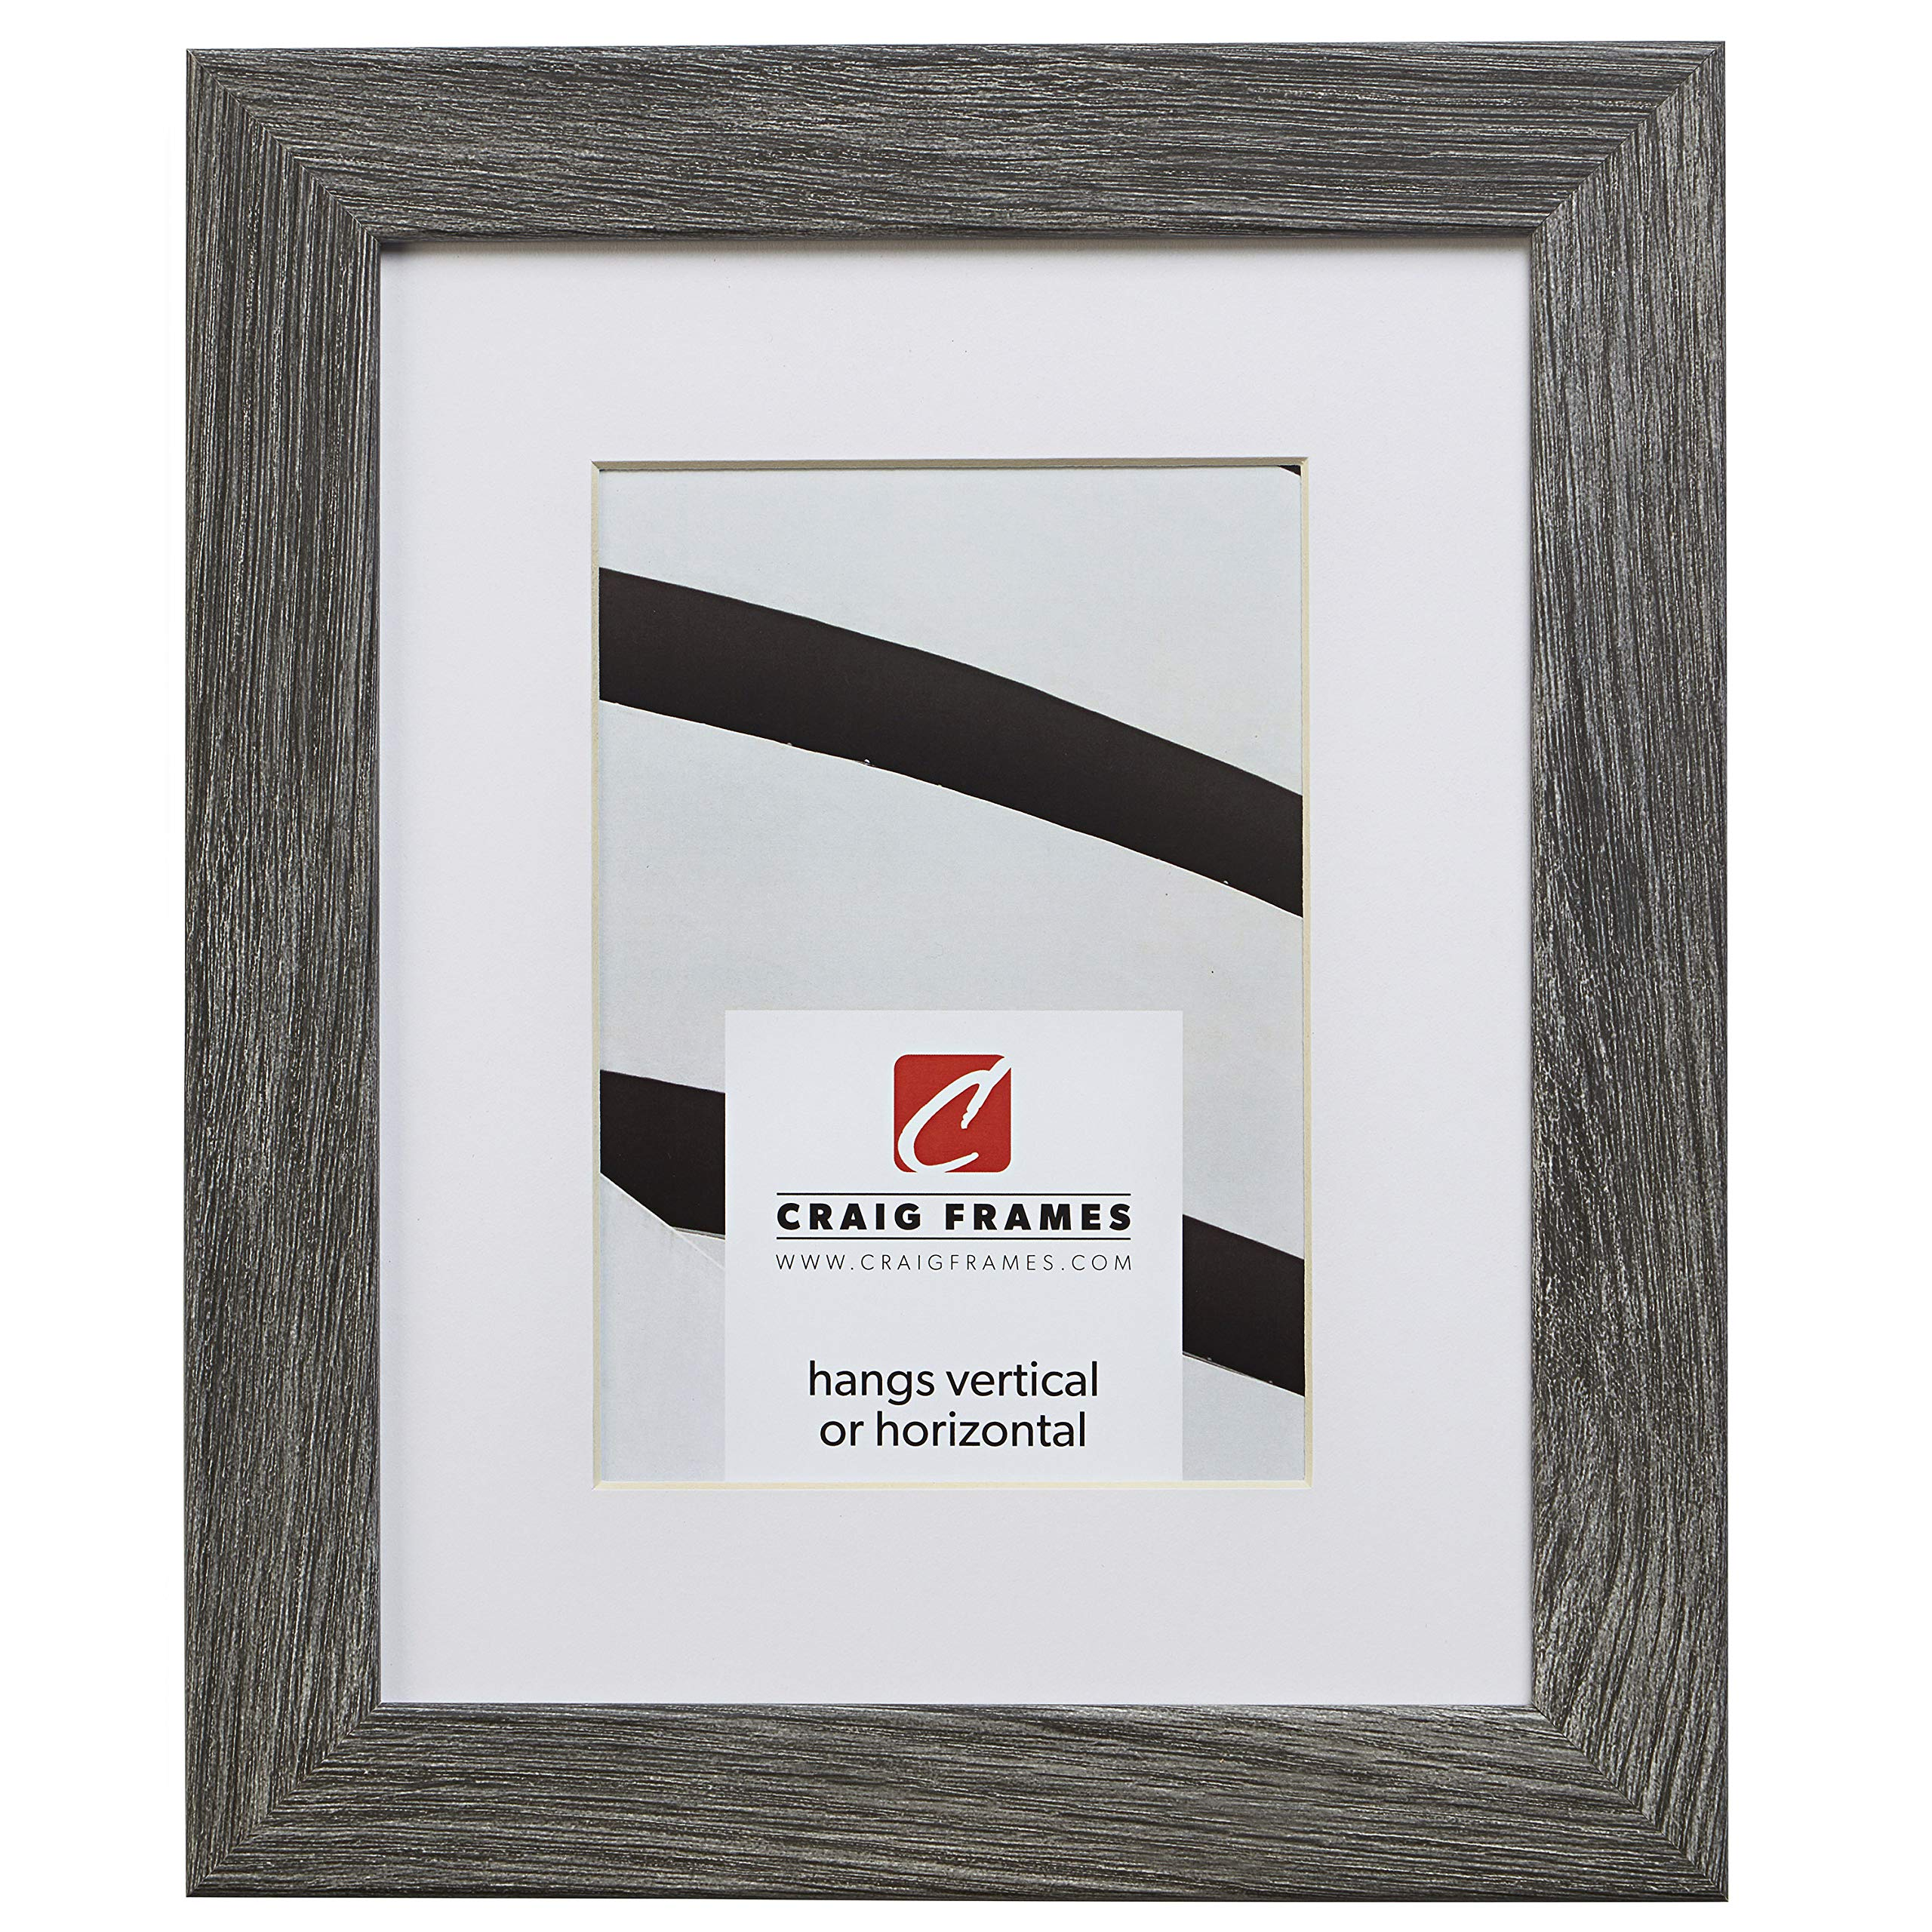 Craig Frames 26030 20 x 24 Inch Gray Barnwood Picture Frame Matted to Display a 16 x 20 Inch Photo by Craig Frames